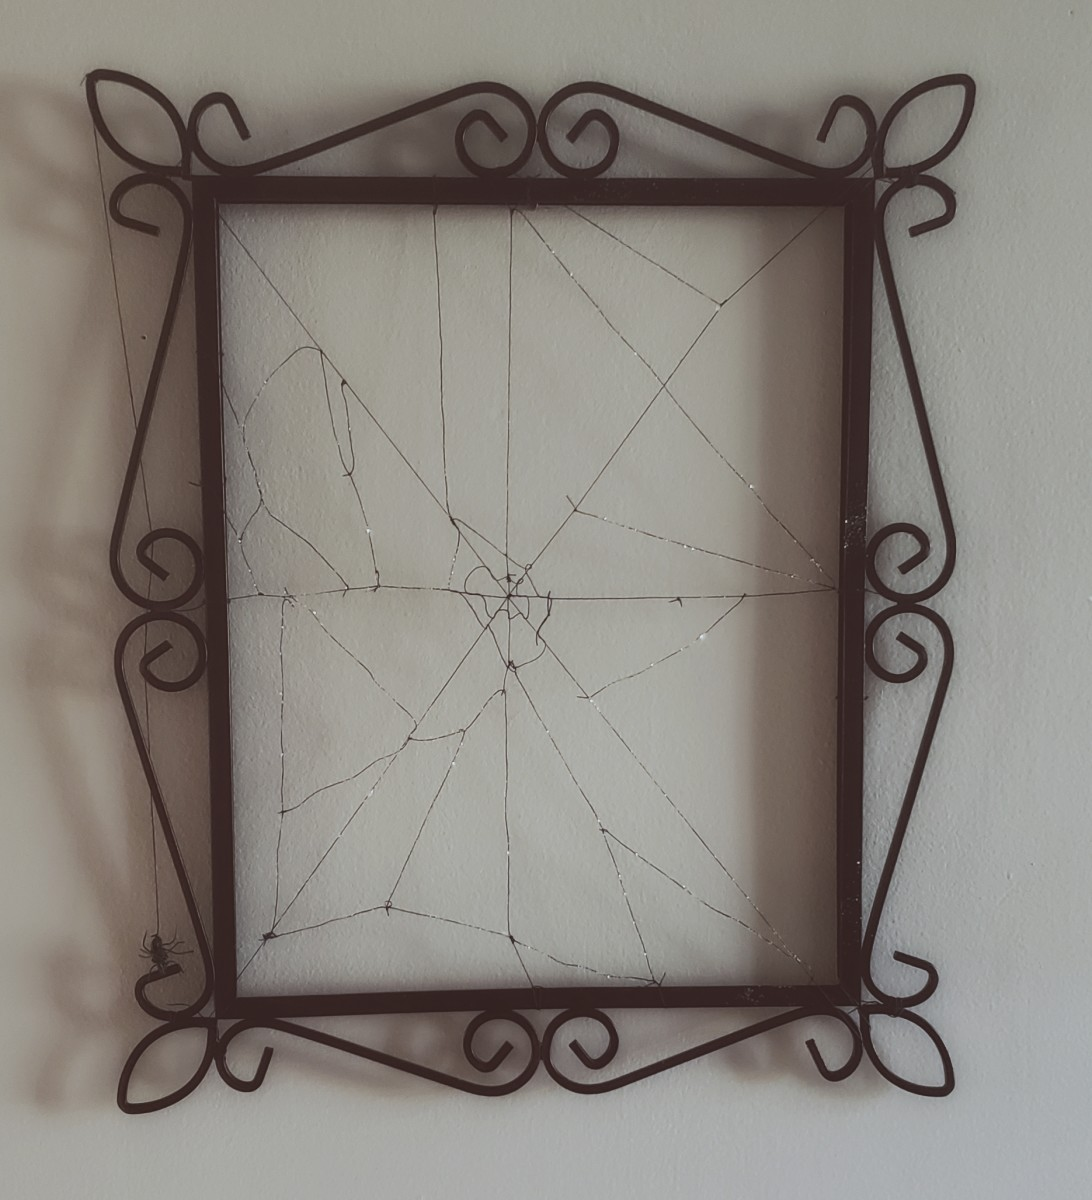 This is what my completed spider-web picture frame looks like.